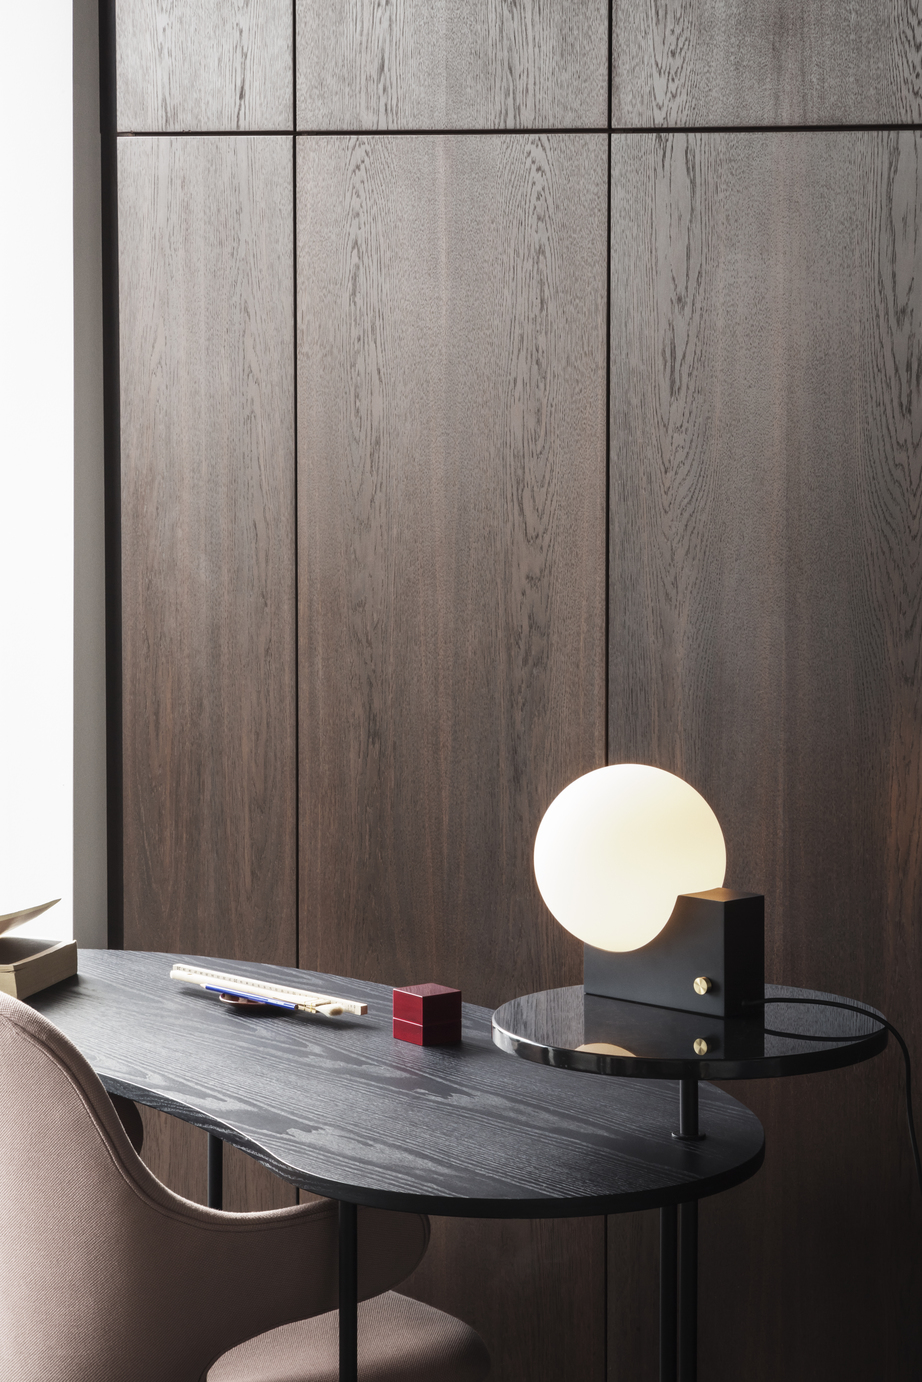 ATD_Location_2018_Palette JH9_Journey SHY1_Catch JH15_4